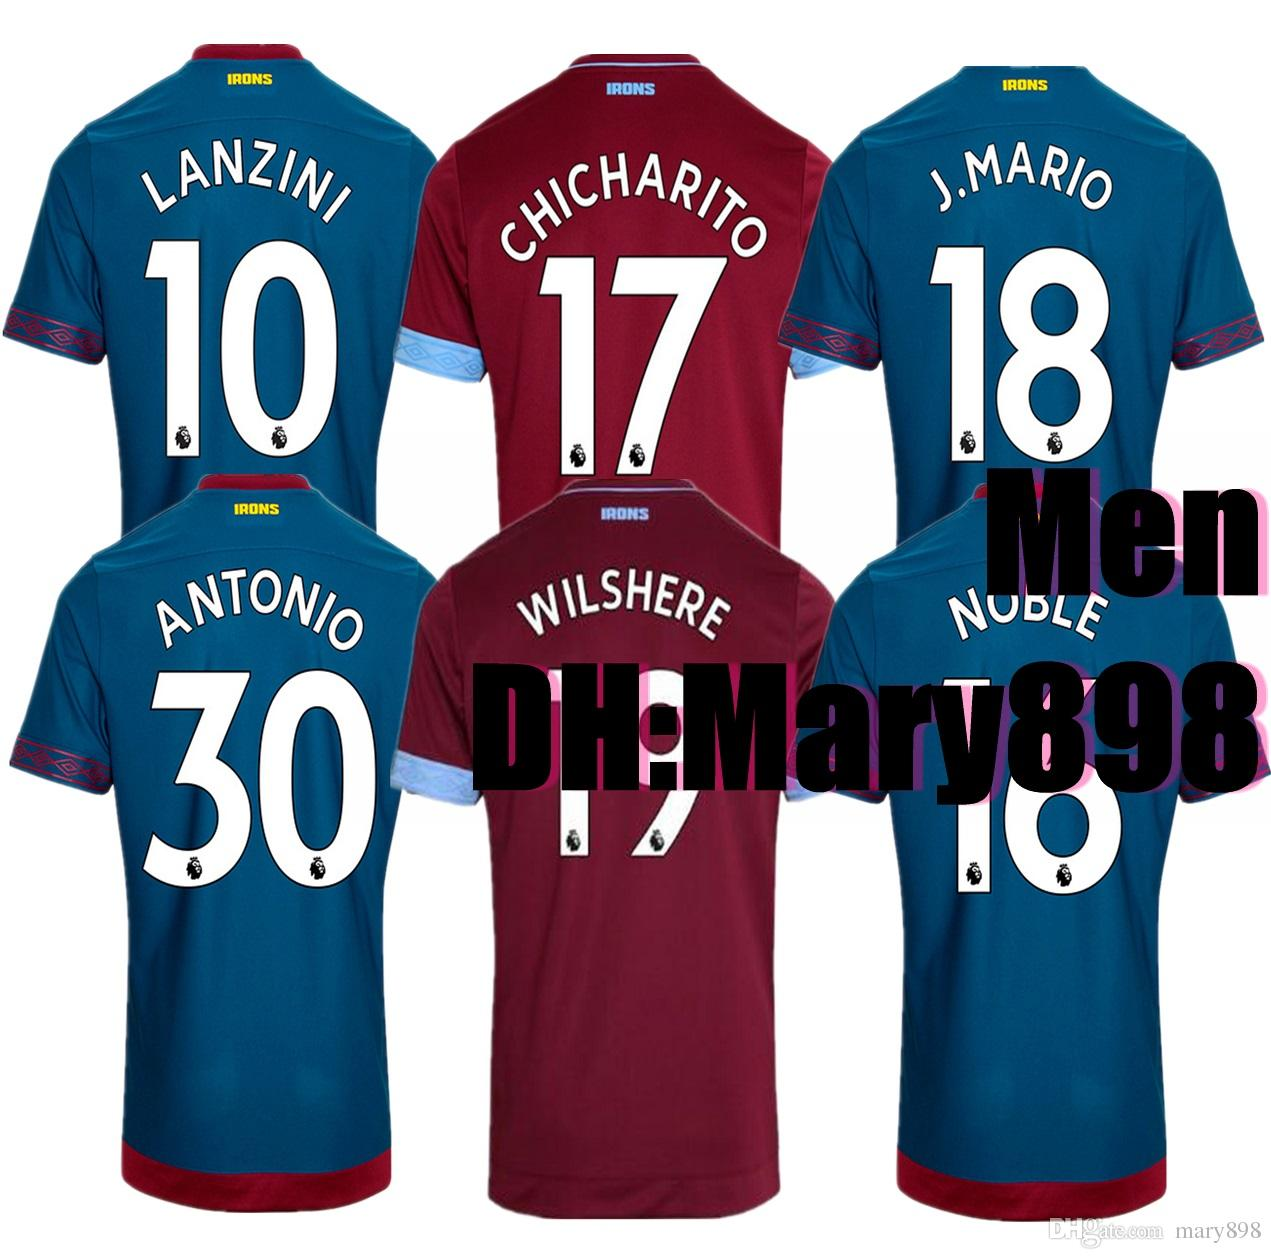 2019 WestHam United Home Soccer Jersey 2018 19 West Ham United Soccer Shirt  18 19  17 CHICHARITO West Ham United Football Uniform Jeresys From Mary898 a2bb9df2a